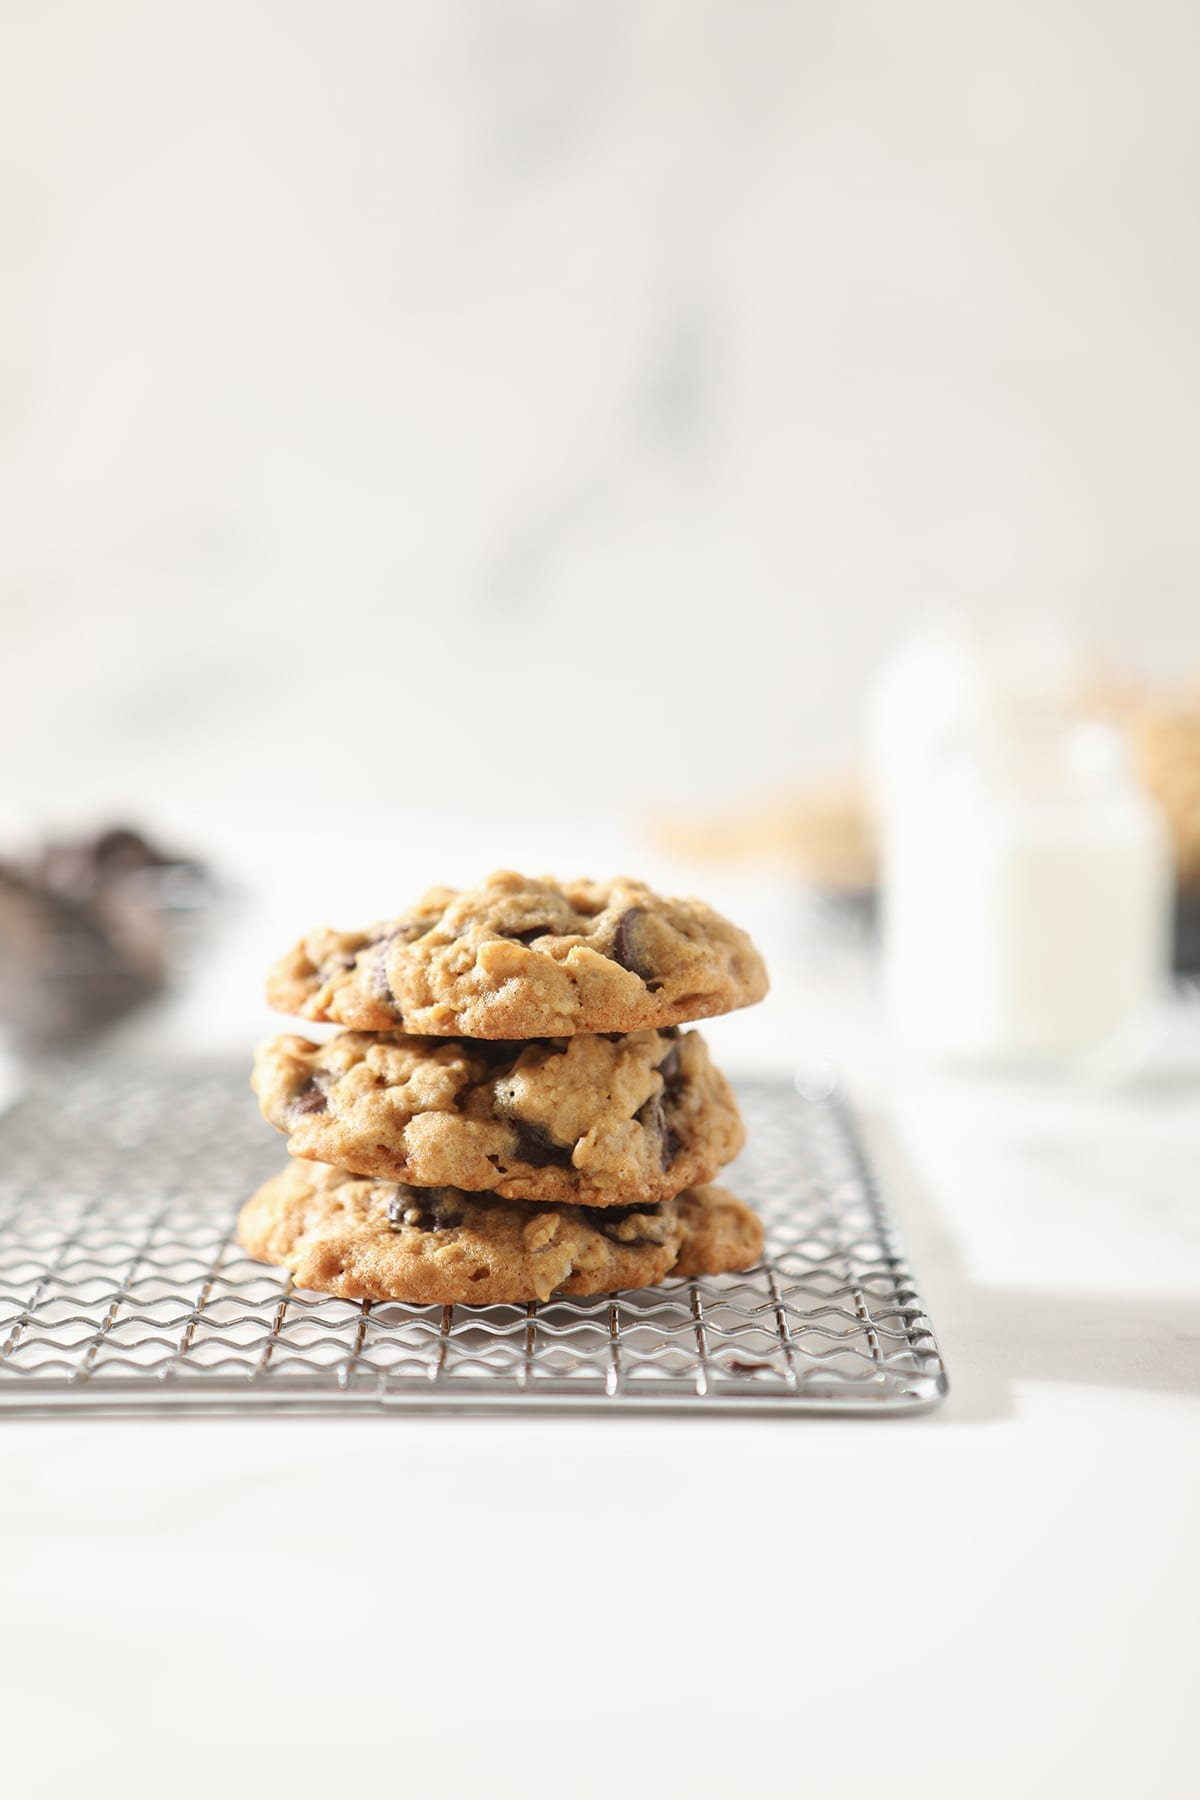 Three oatmeal chocolate chip cookies stacked on top of each other on a wire cooling rack